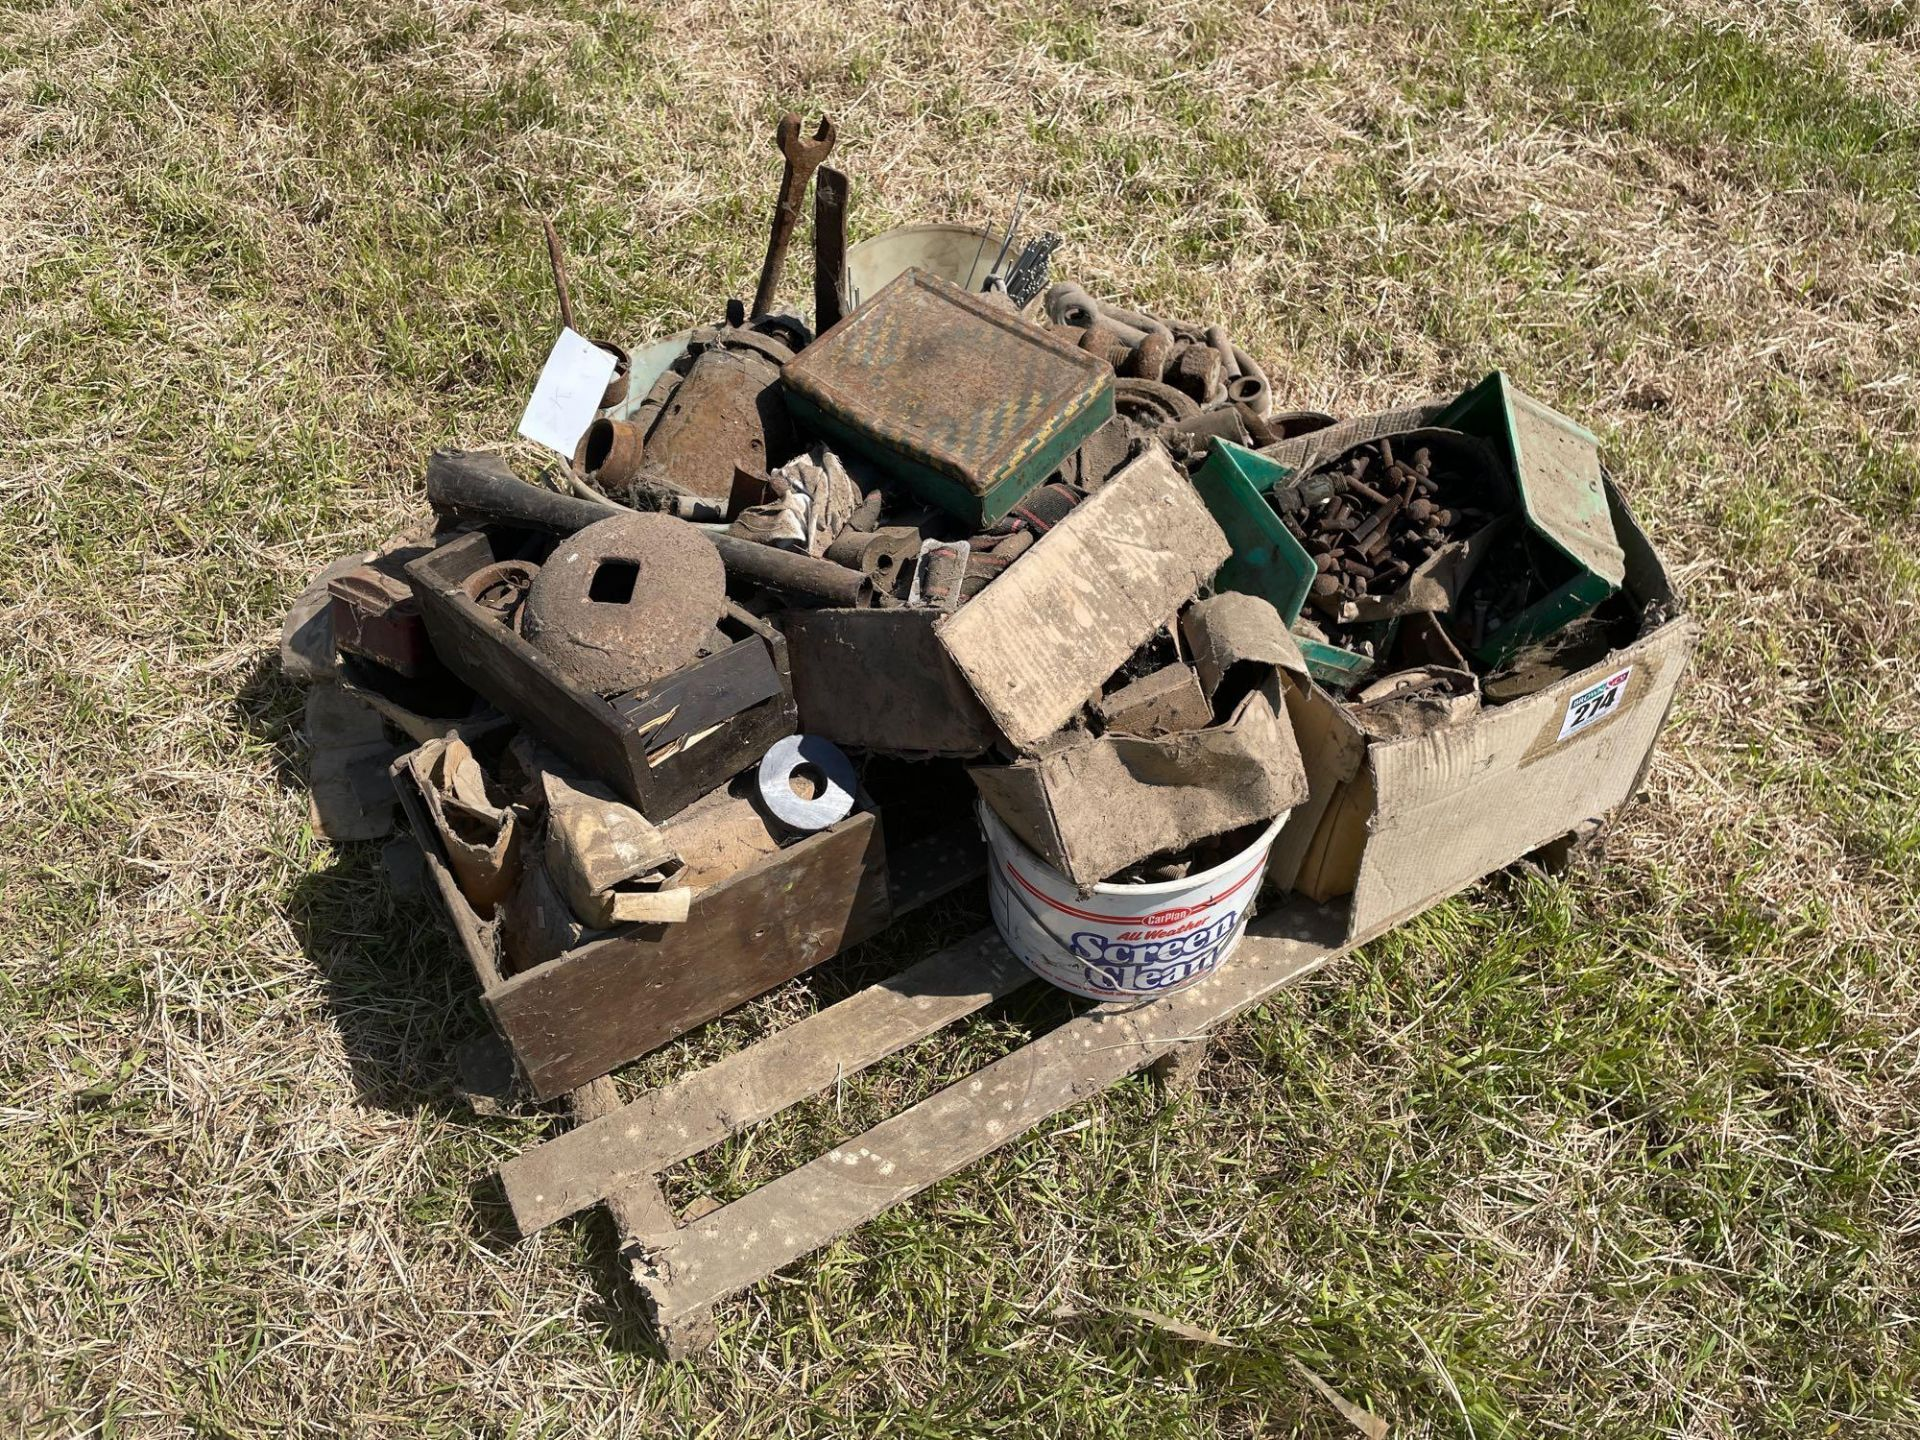 Various spares including bolts